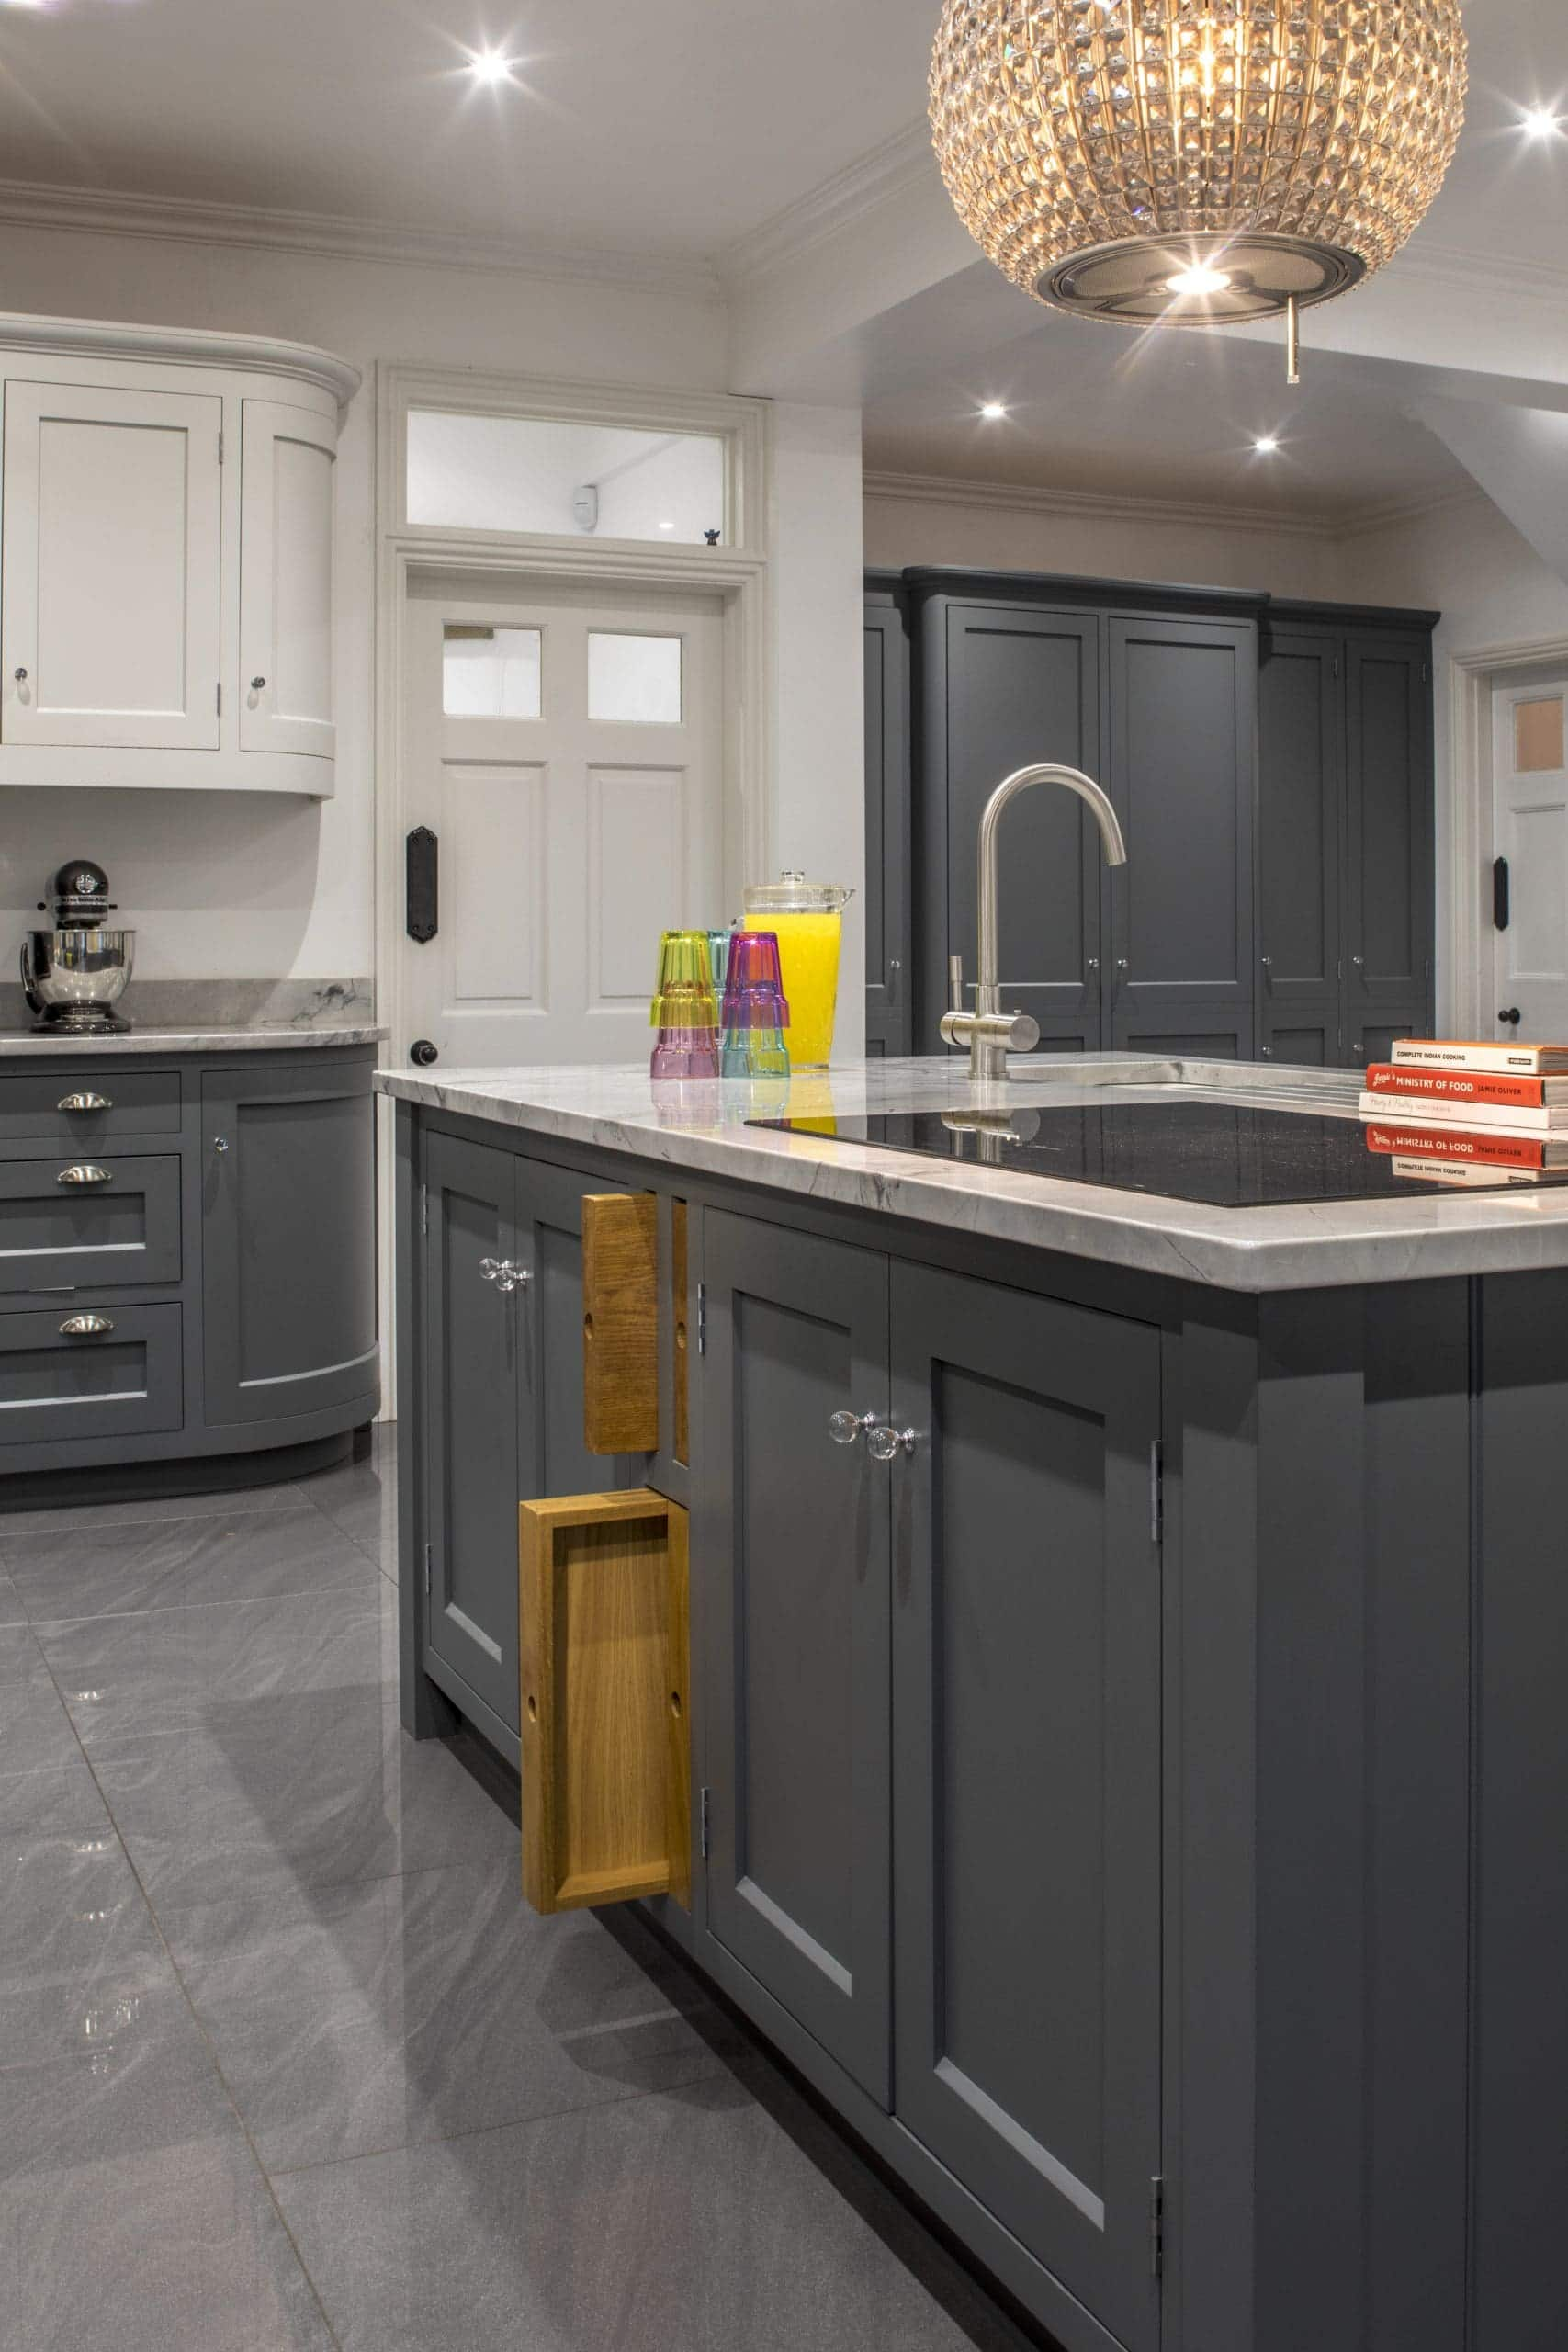 A beautiful, bespoke kitchen with integrated chopping boards